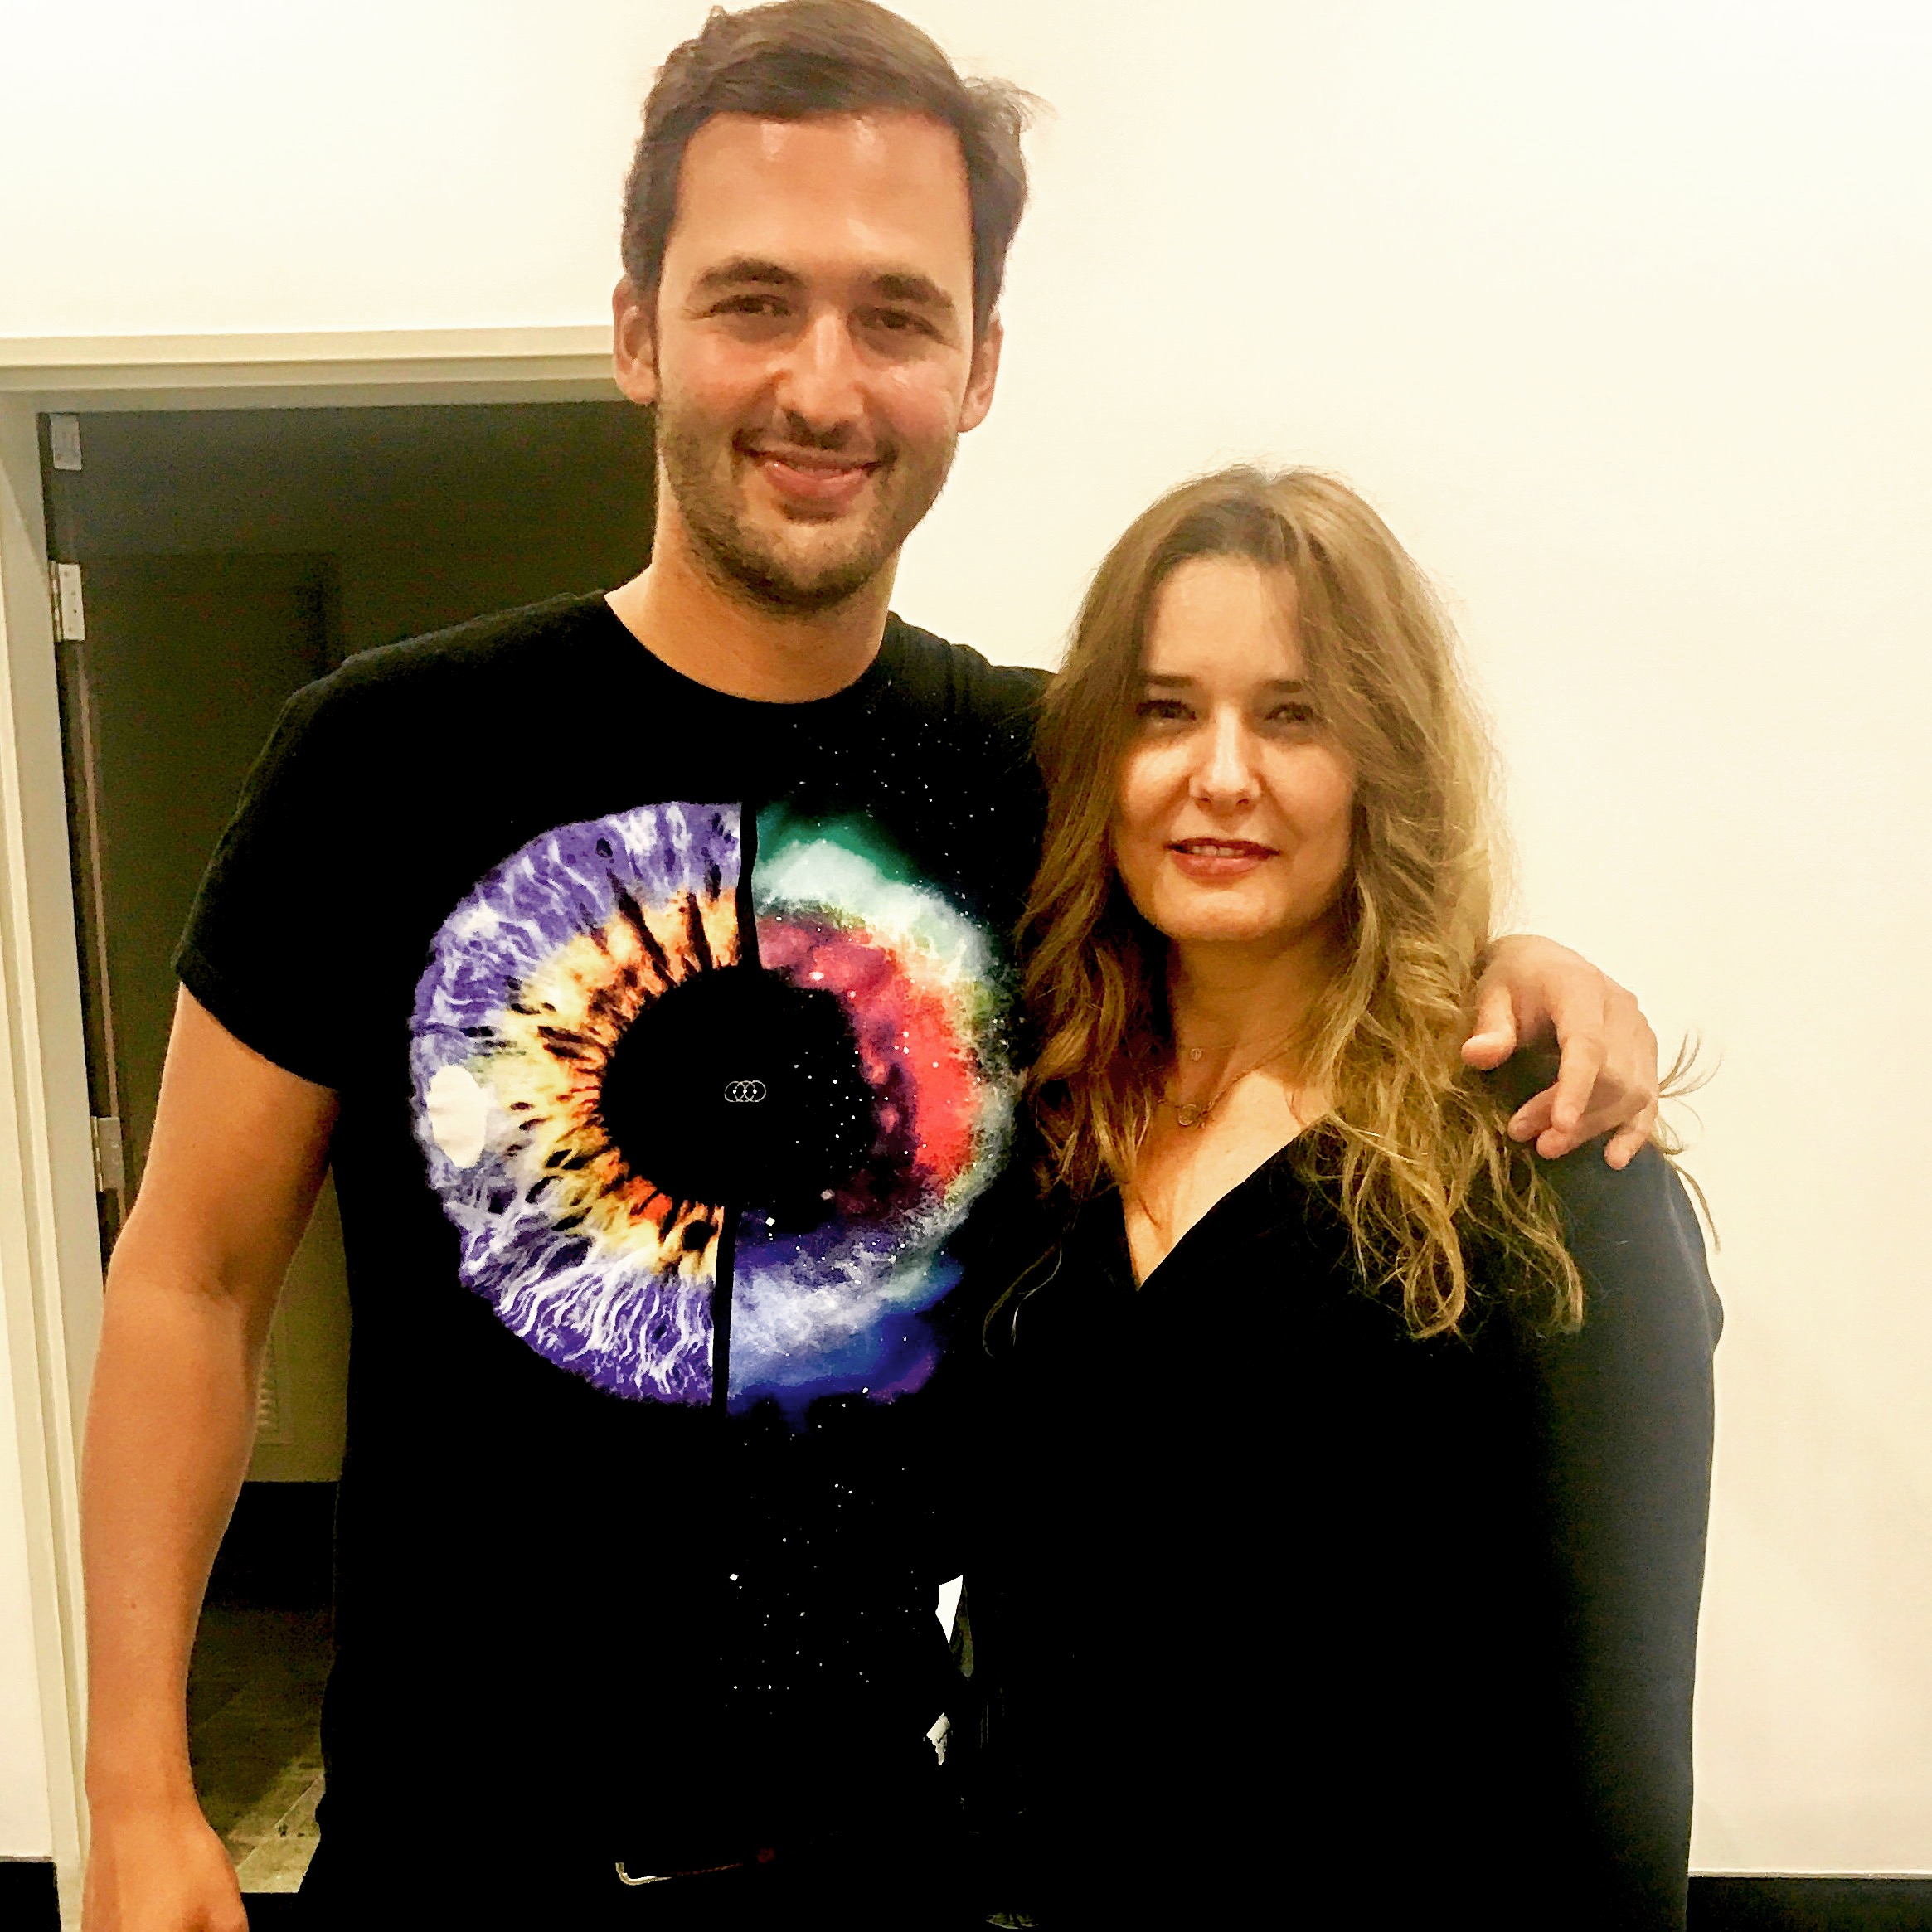 With Jason Silva. Do check out his inspiring talks on thisisjasonsilva.com